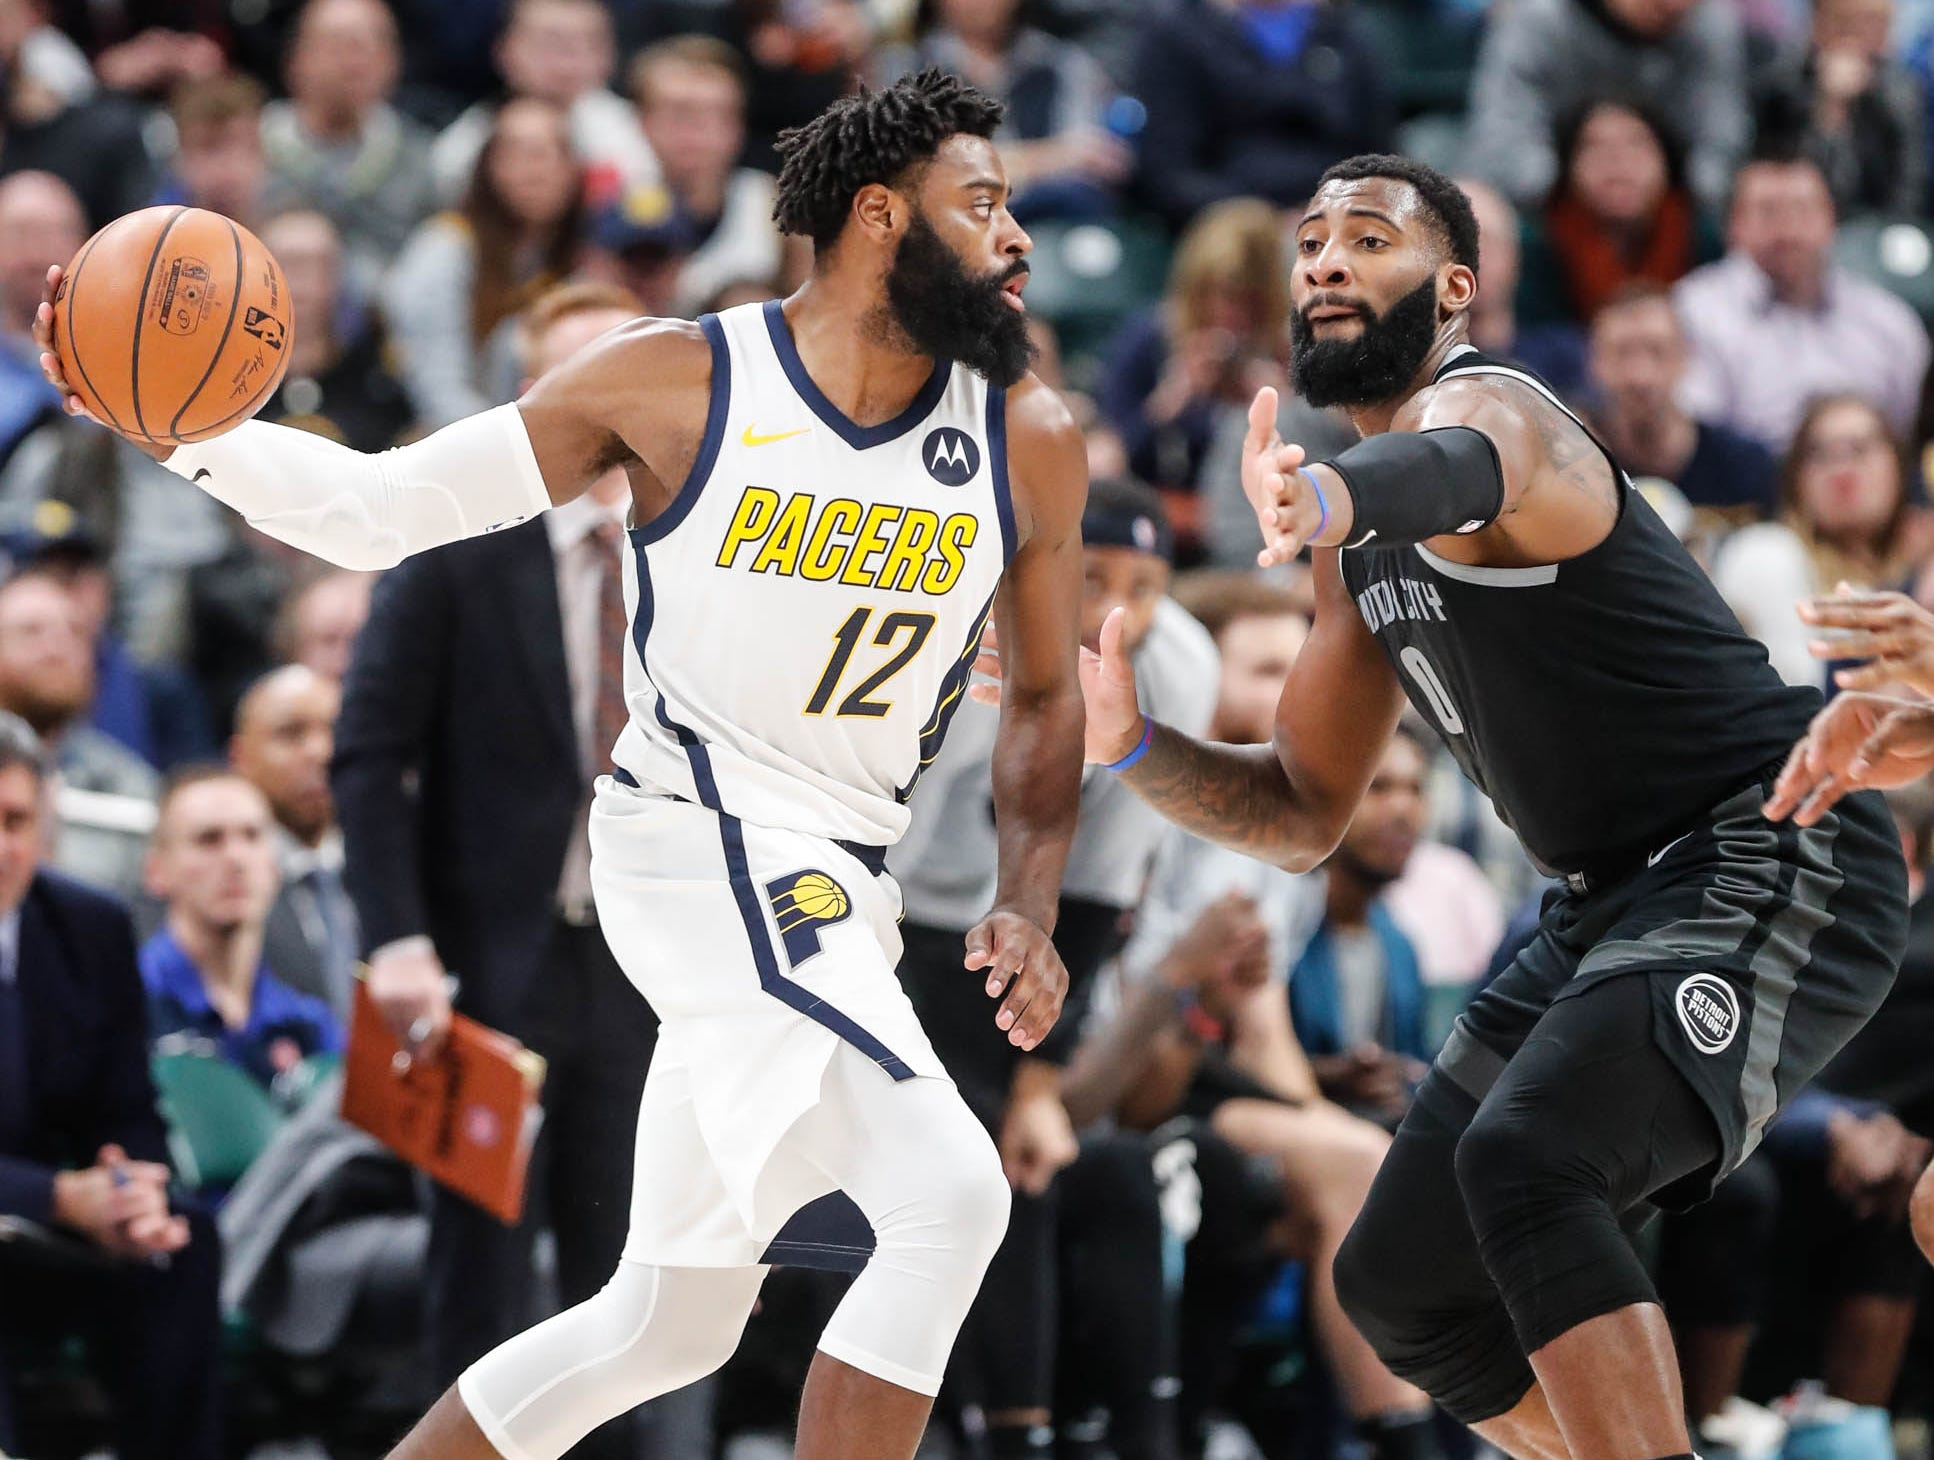 Indiana Pacer's guard Tyreke Evans (12), passes the ball around, Detroit Piston's center Andre Drummond (0), during a game between the Indiana Pacers and the Detroit Pistons at at Bankers Life Fieldhouse in Indianapolis on Friday, Dec. 28, 2018.